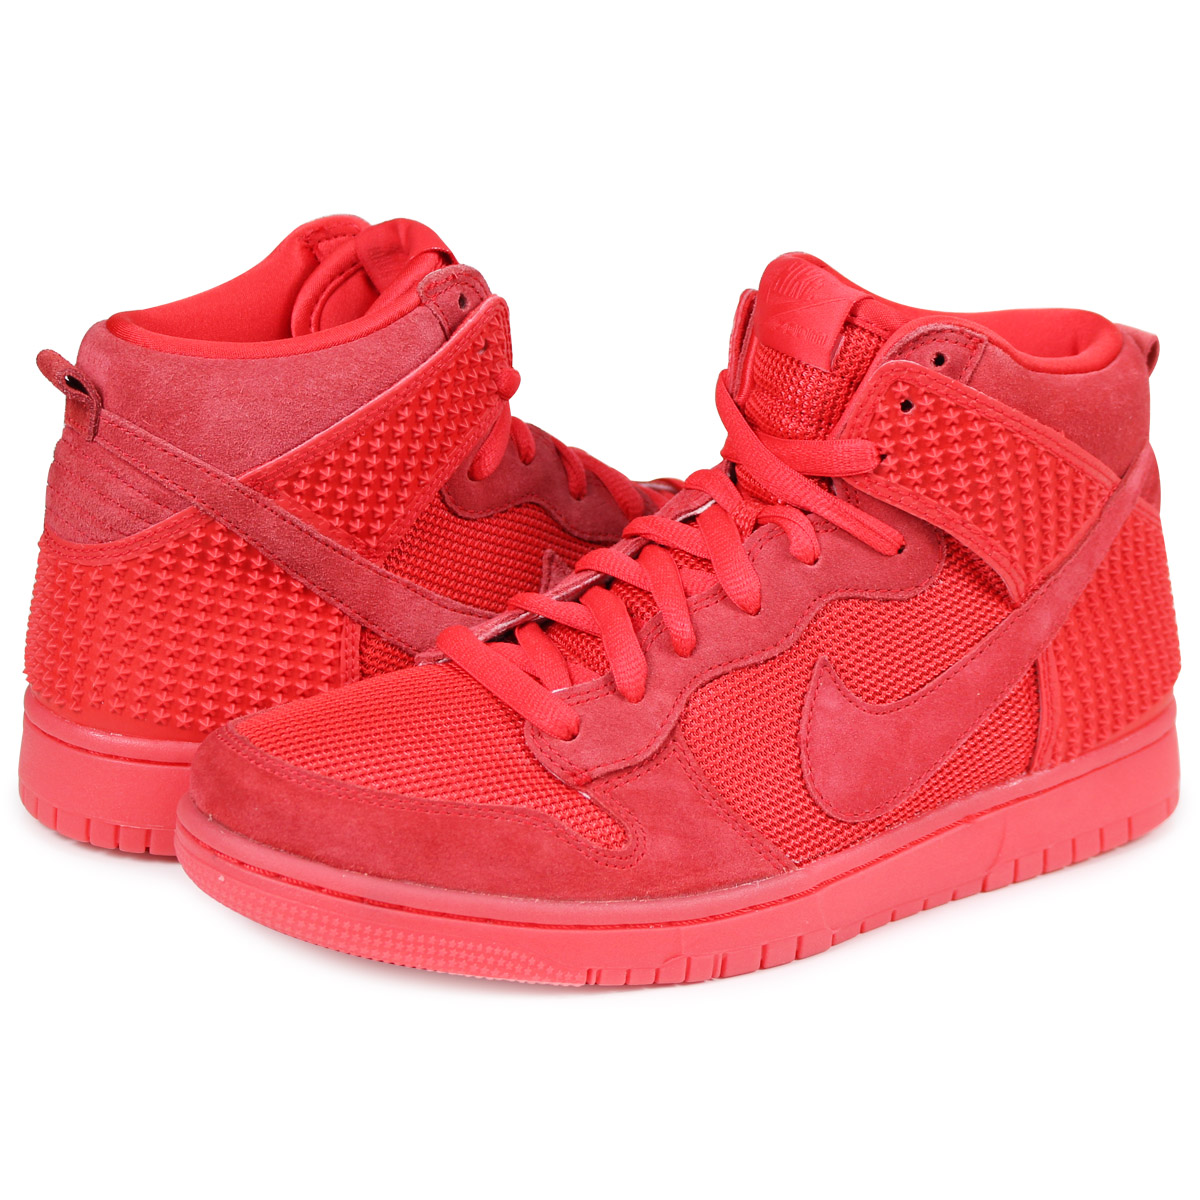 f6dd4f37ea5 NIKE DUNK HIGH DUNK CMFT PREMIUM RED OCTOBER Nike dunk high sneakers men  705